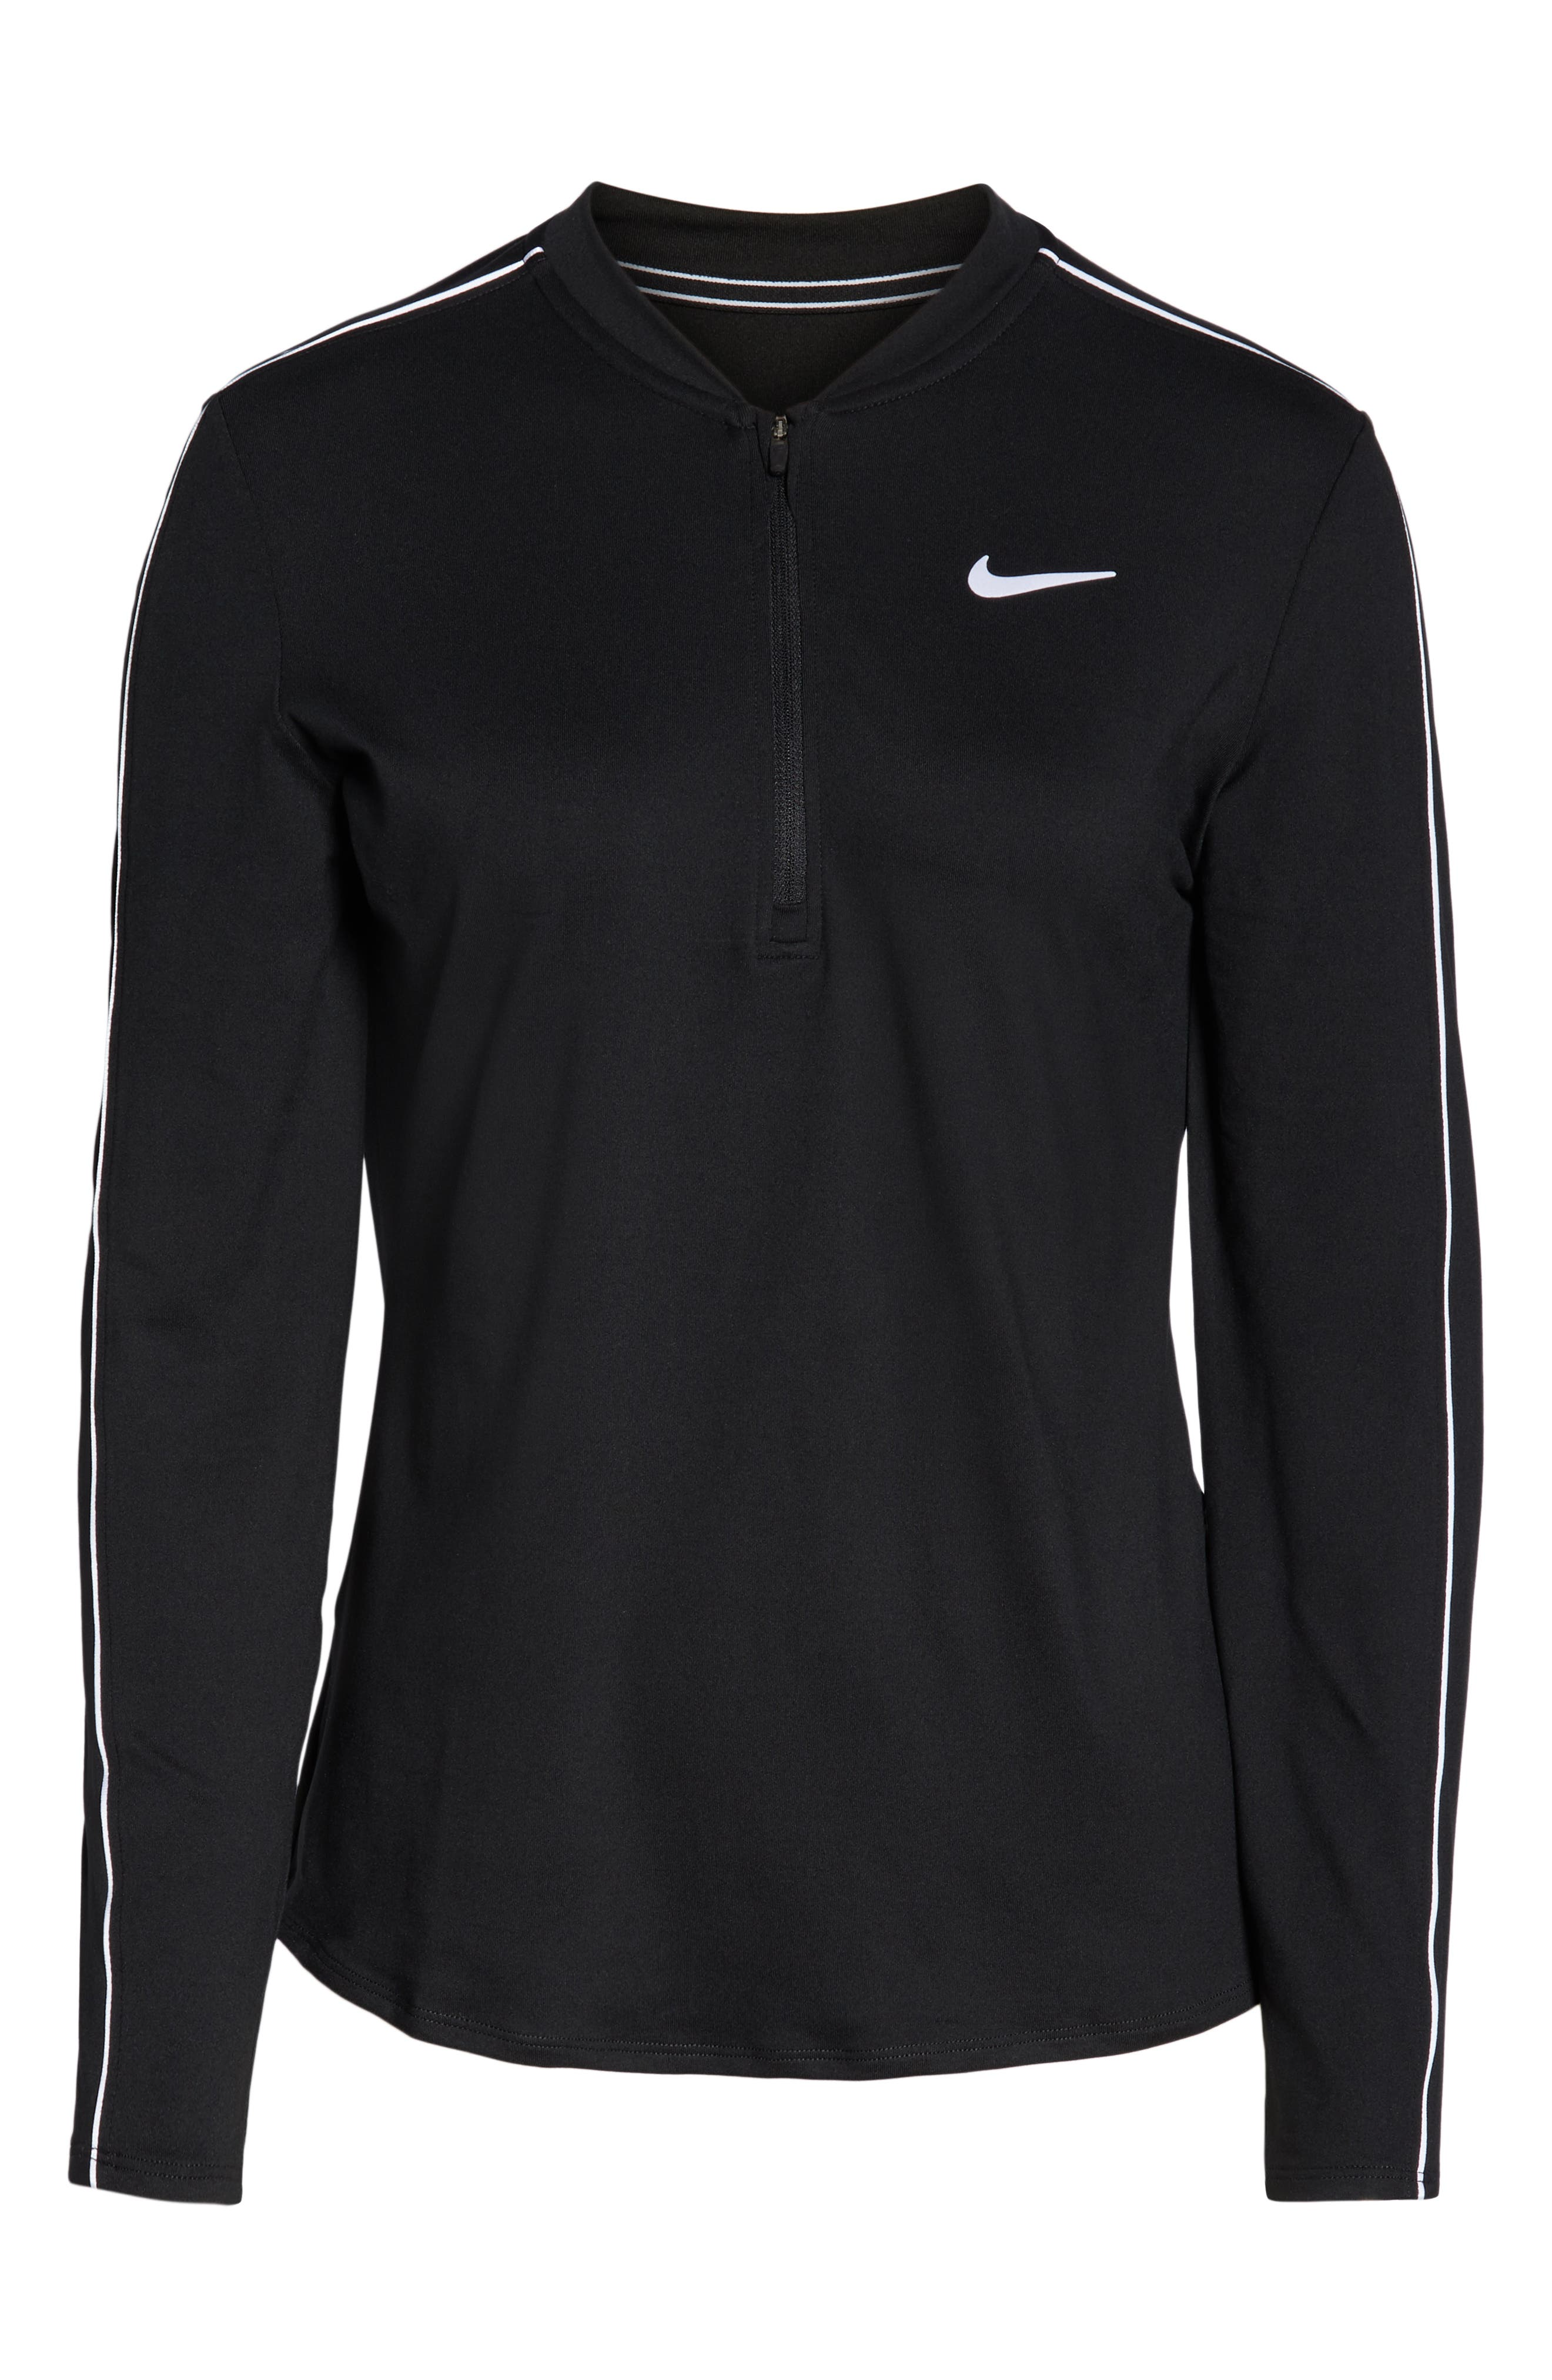 Court Dri-FIT Quarter Zip Top,                             Alternate thumbnail 7, color,                             BLACK/ WHITE/ WHITE/ BLACK